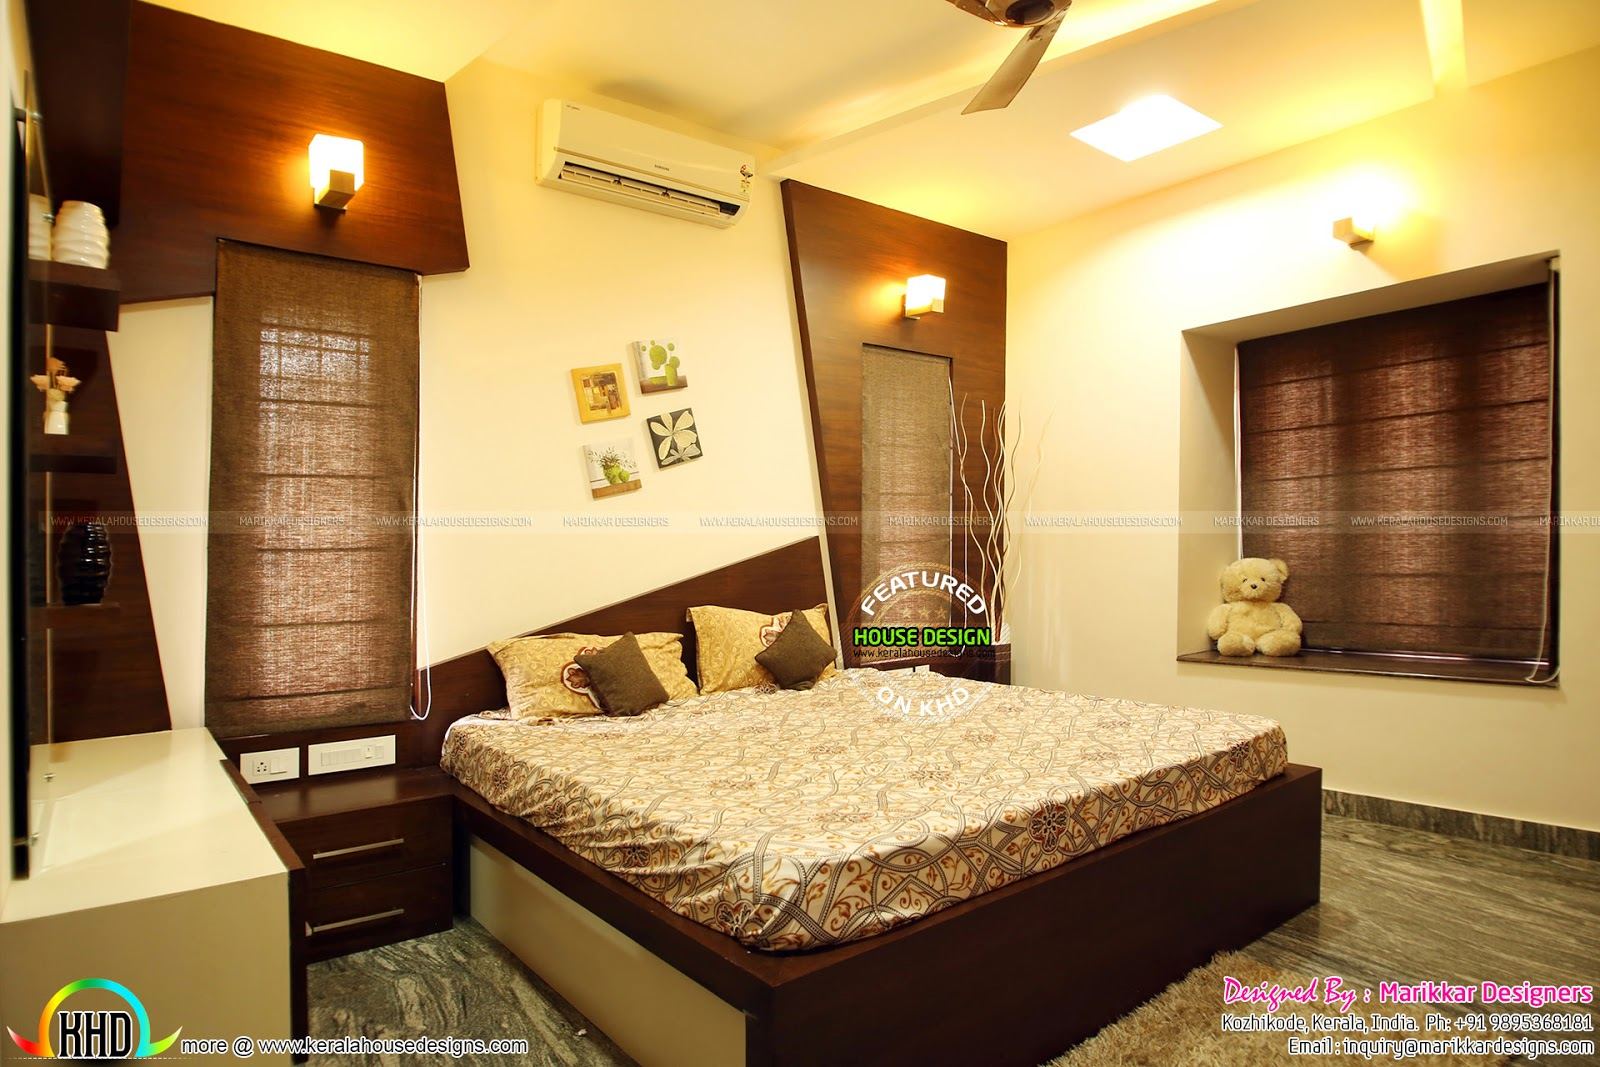 Fully furnished house in Kerala  Kerala home design and floor plans